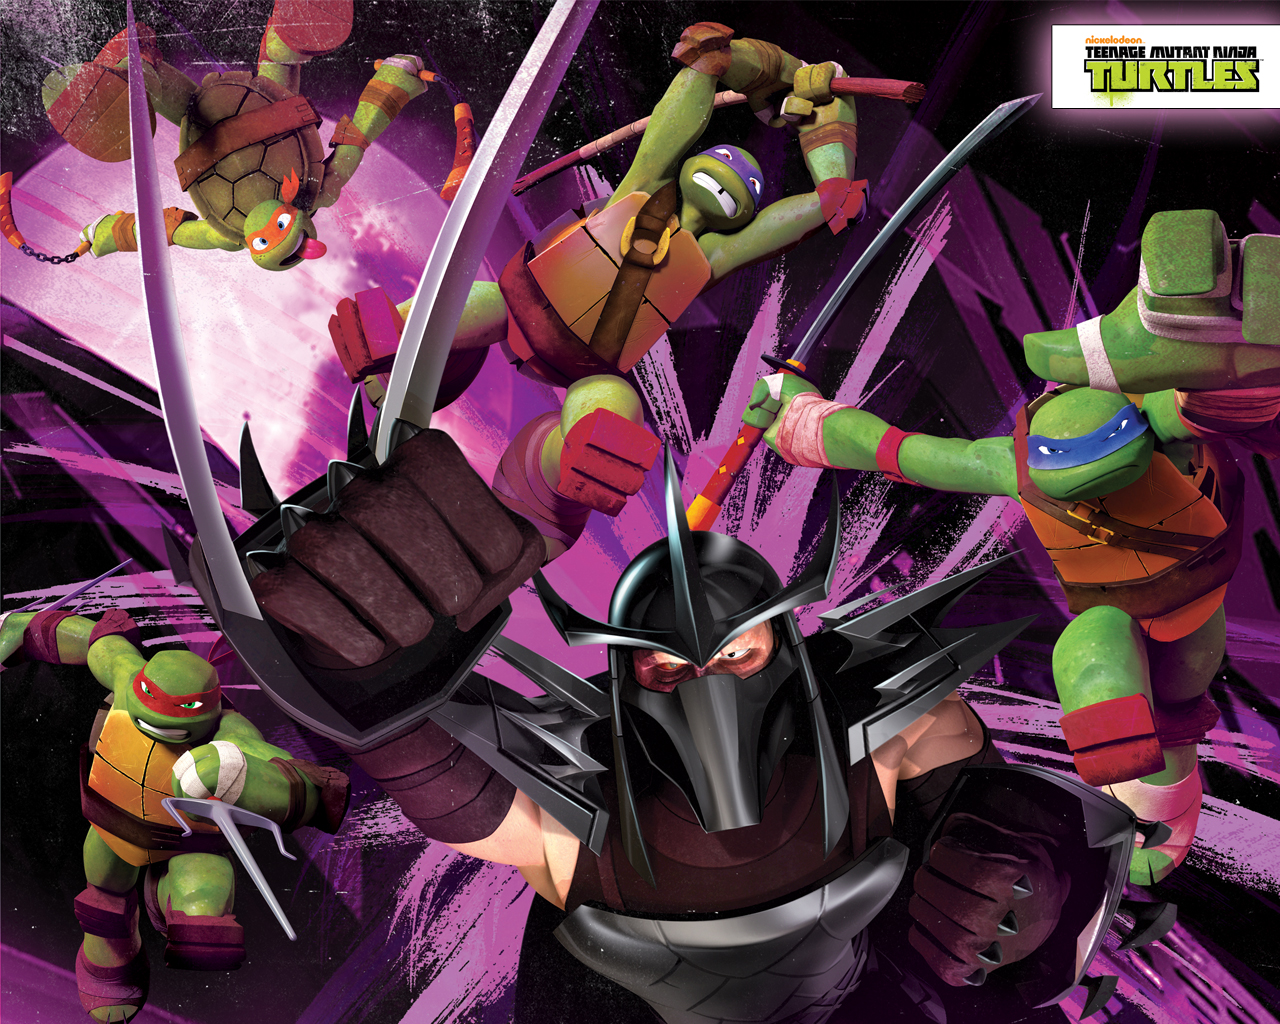 Teenage Mutant Ninja Turtles 2012